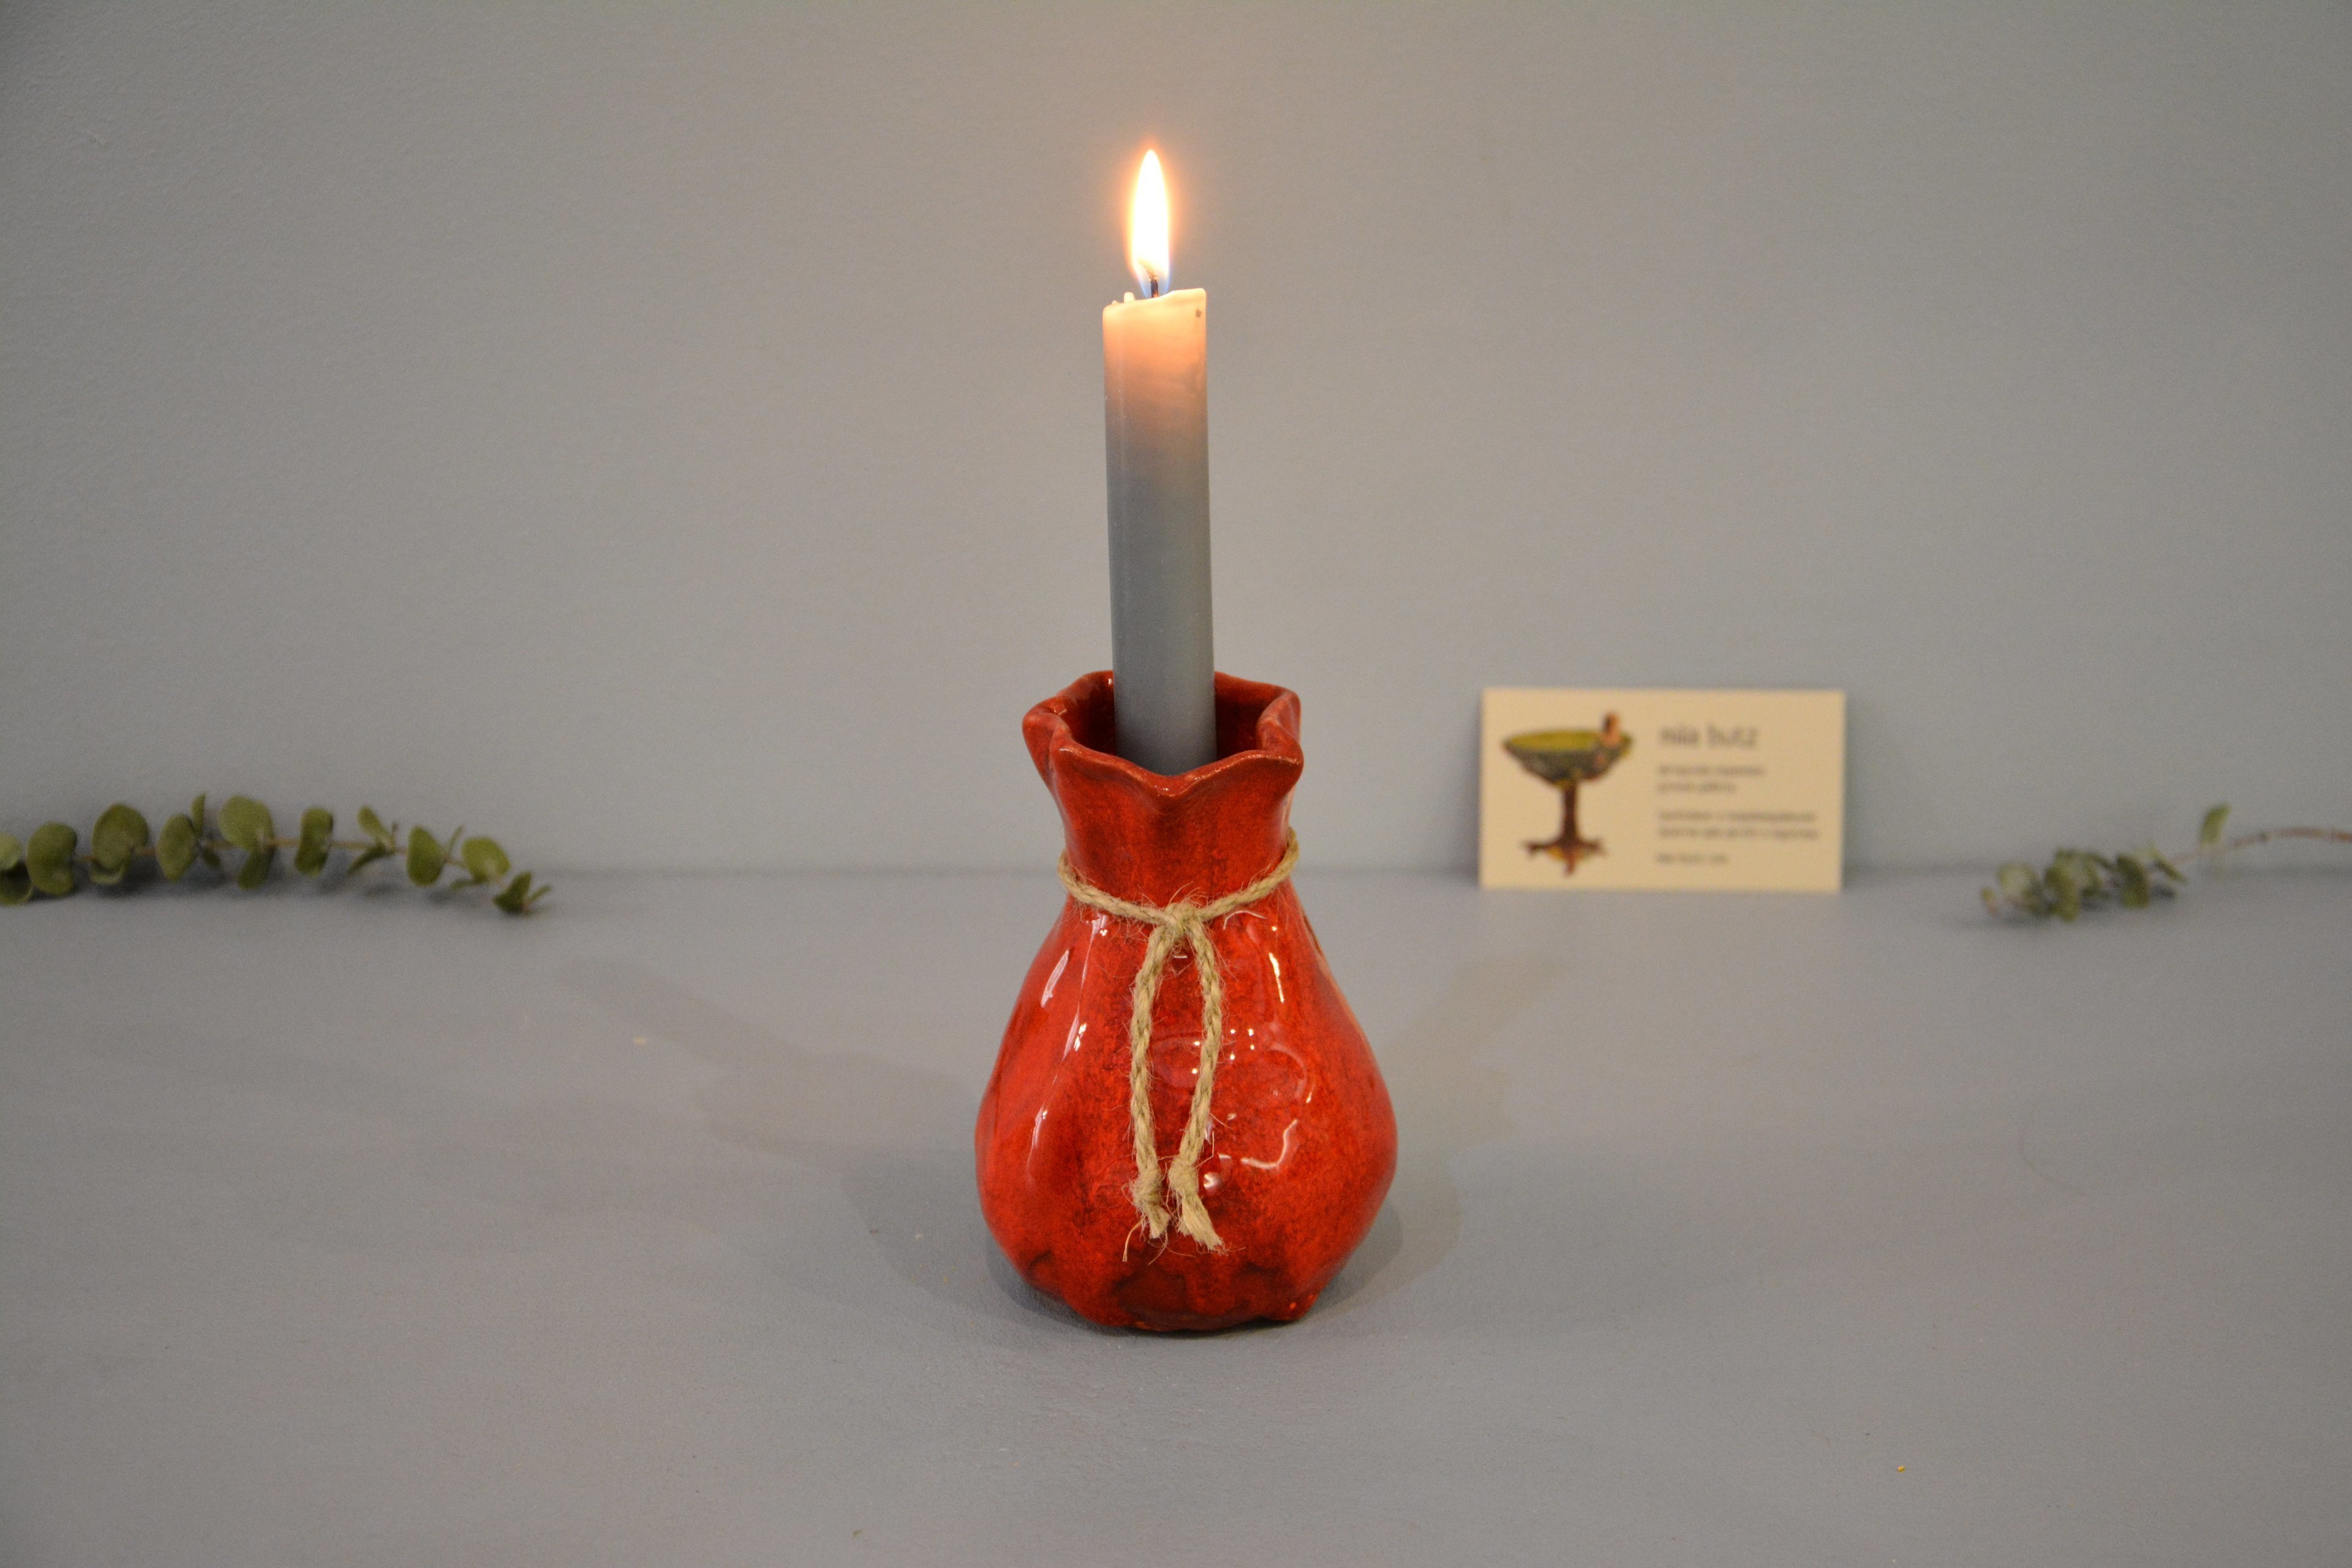 Candle vase «Red Bagful», height - 12 cm, color - red. Photo 1422.